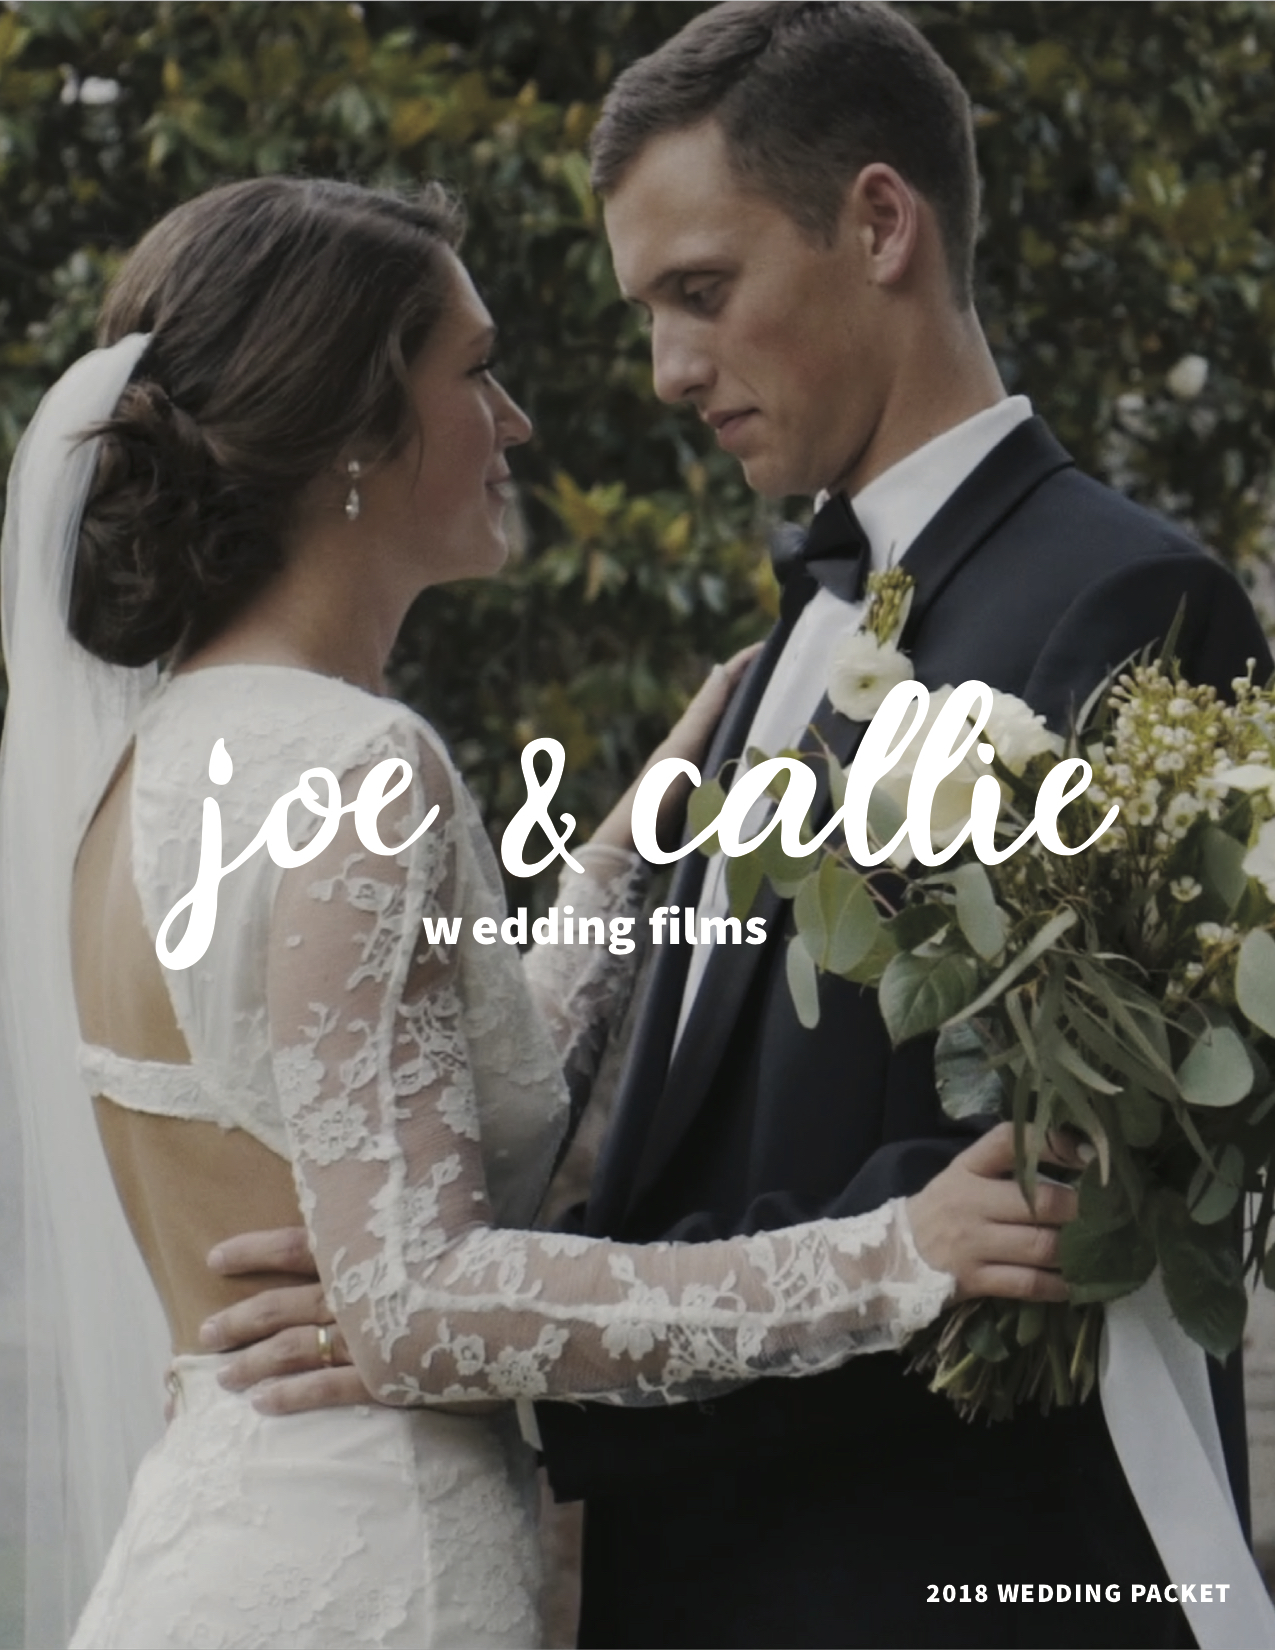 JoeandCallie_2018WeddingInfo.jpg